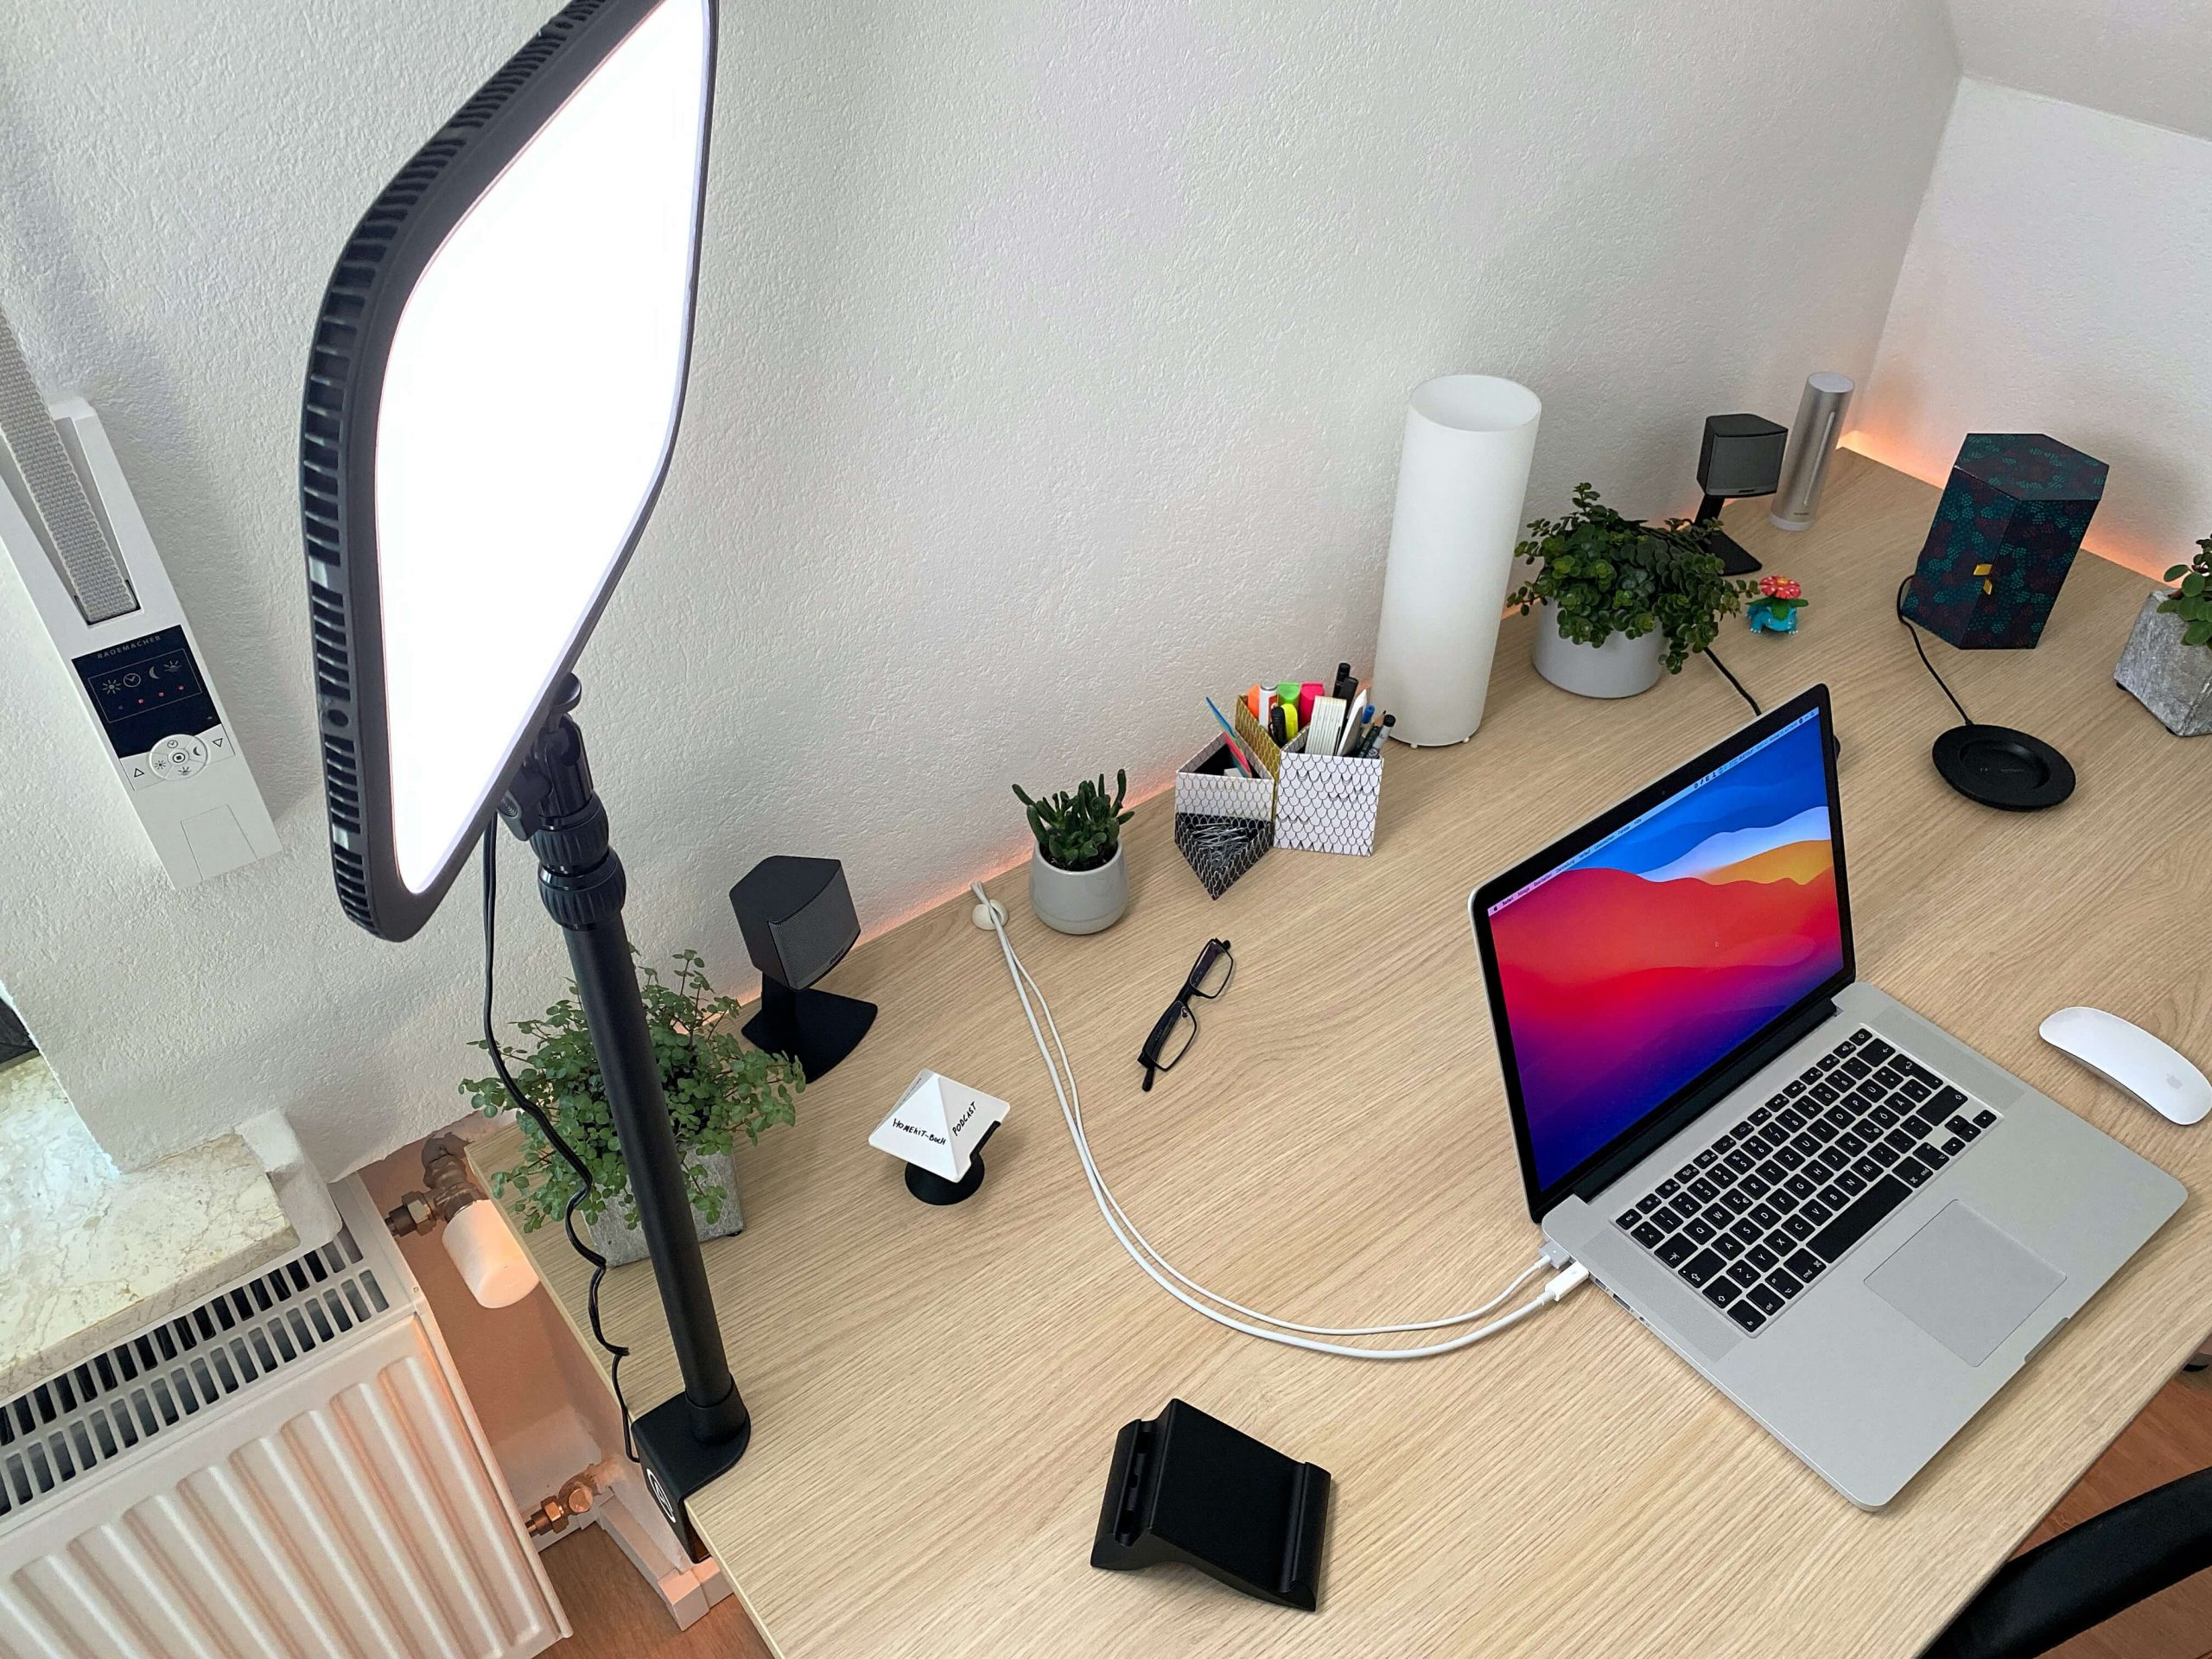 Key-Light-von-Elgato-perfektes-Licht-fuer-Videostreams-und-Co.6-scaled Key Light von Elgato - perfektes Licht für Videostreams und Co.